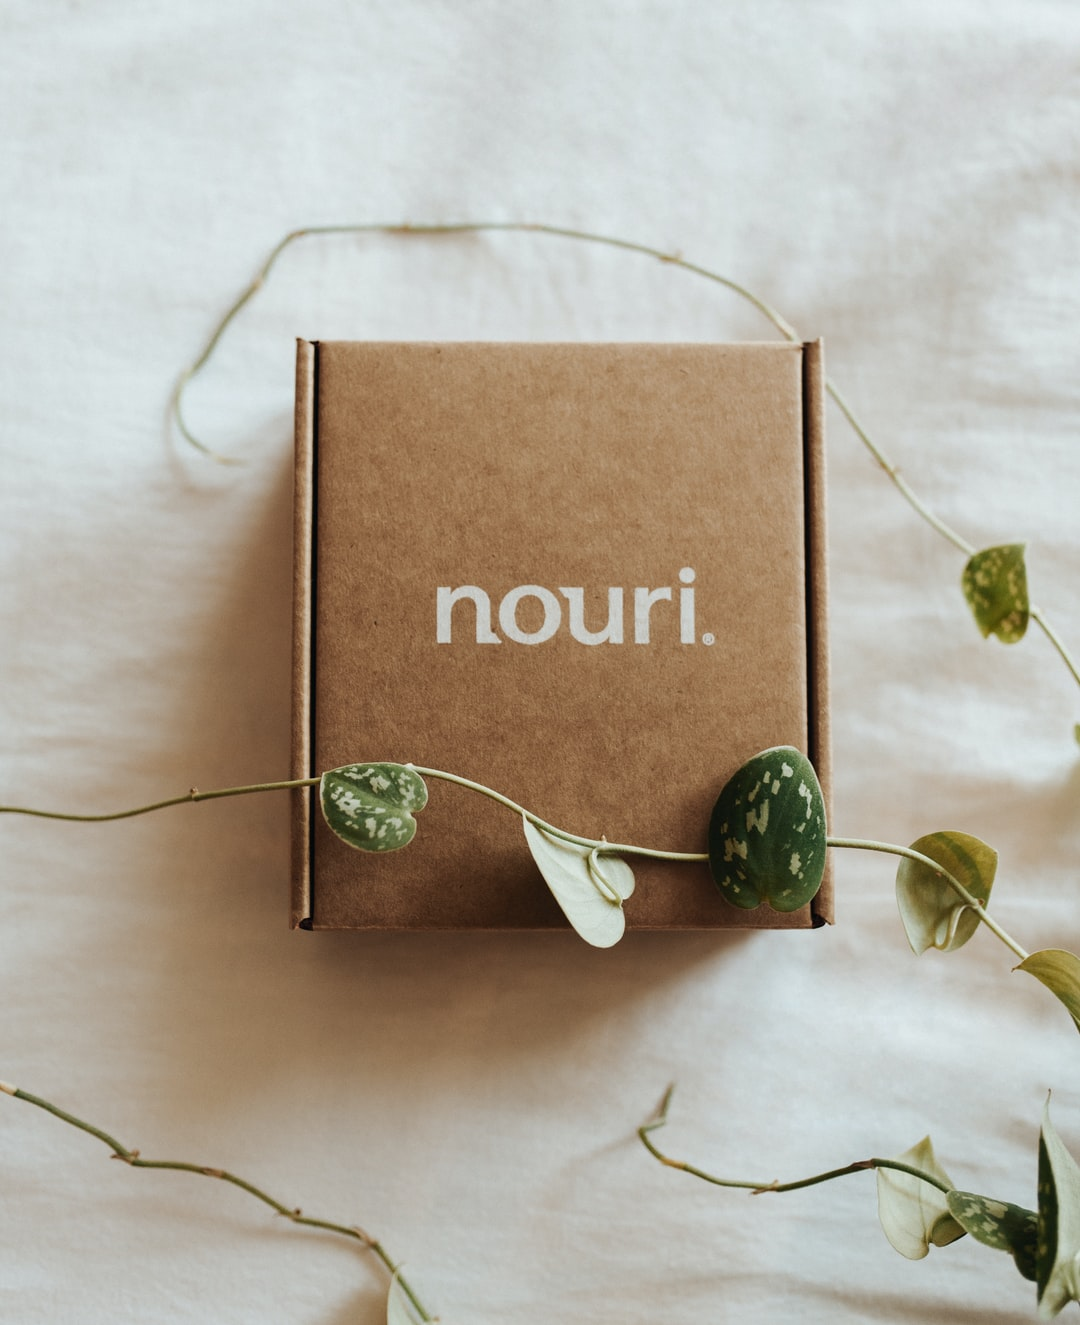 Package of Nouri, a proprietary probiotic and omega blend, on white comforter surrounded by beautiful vines of green leaves.